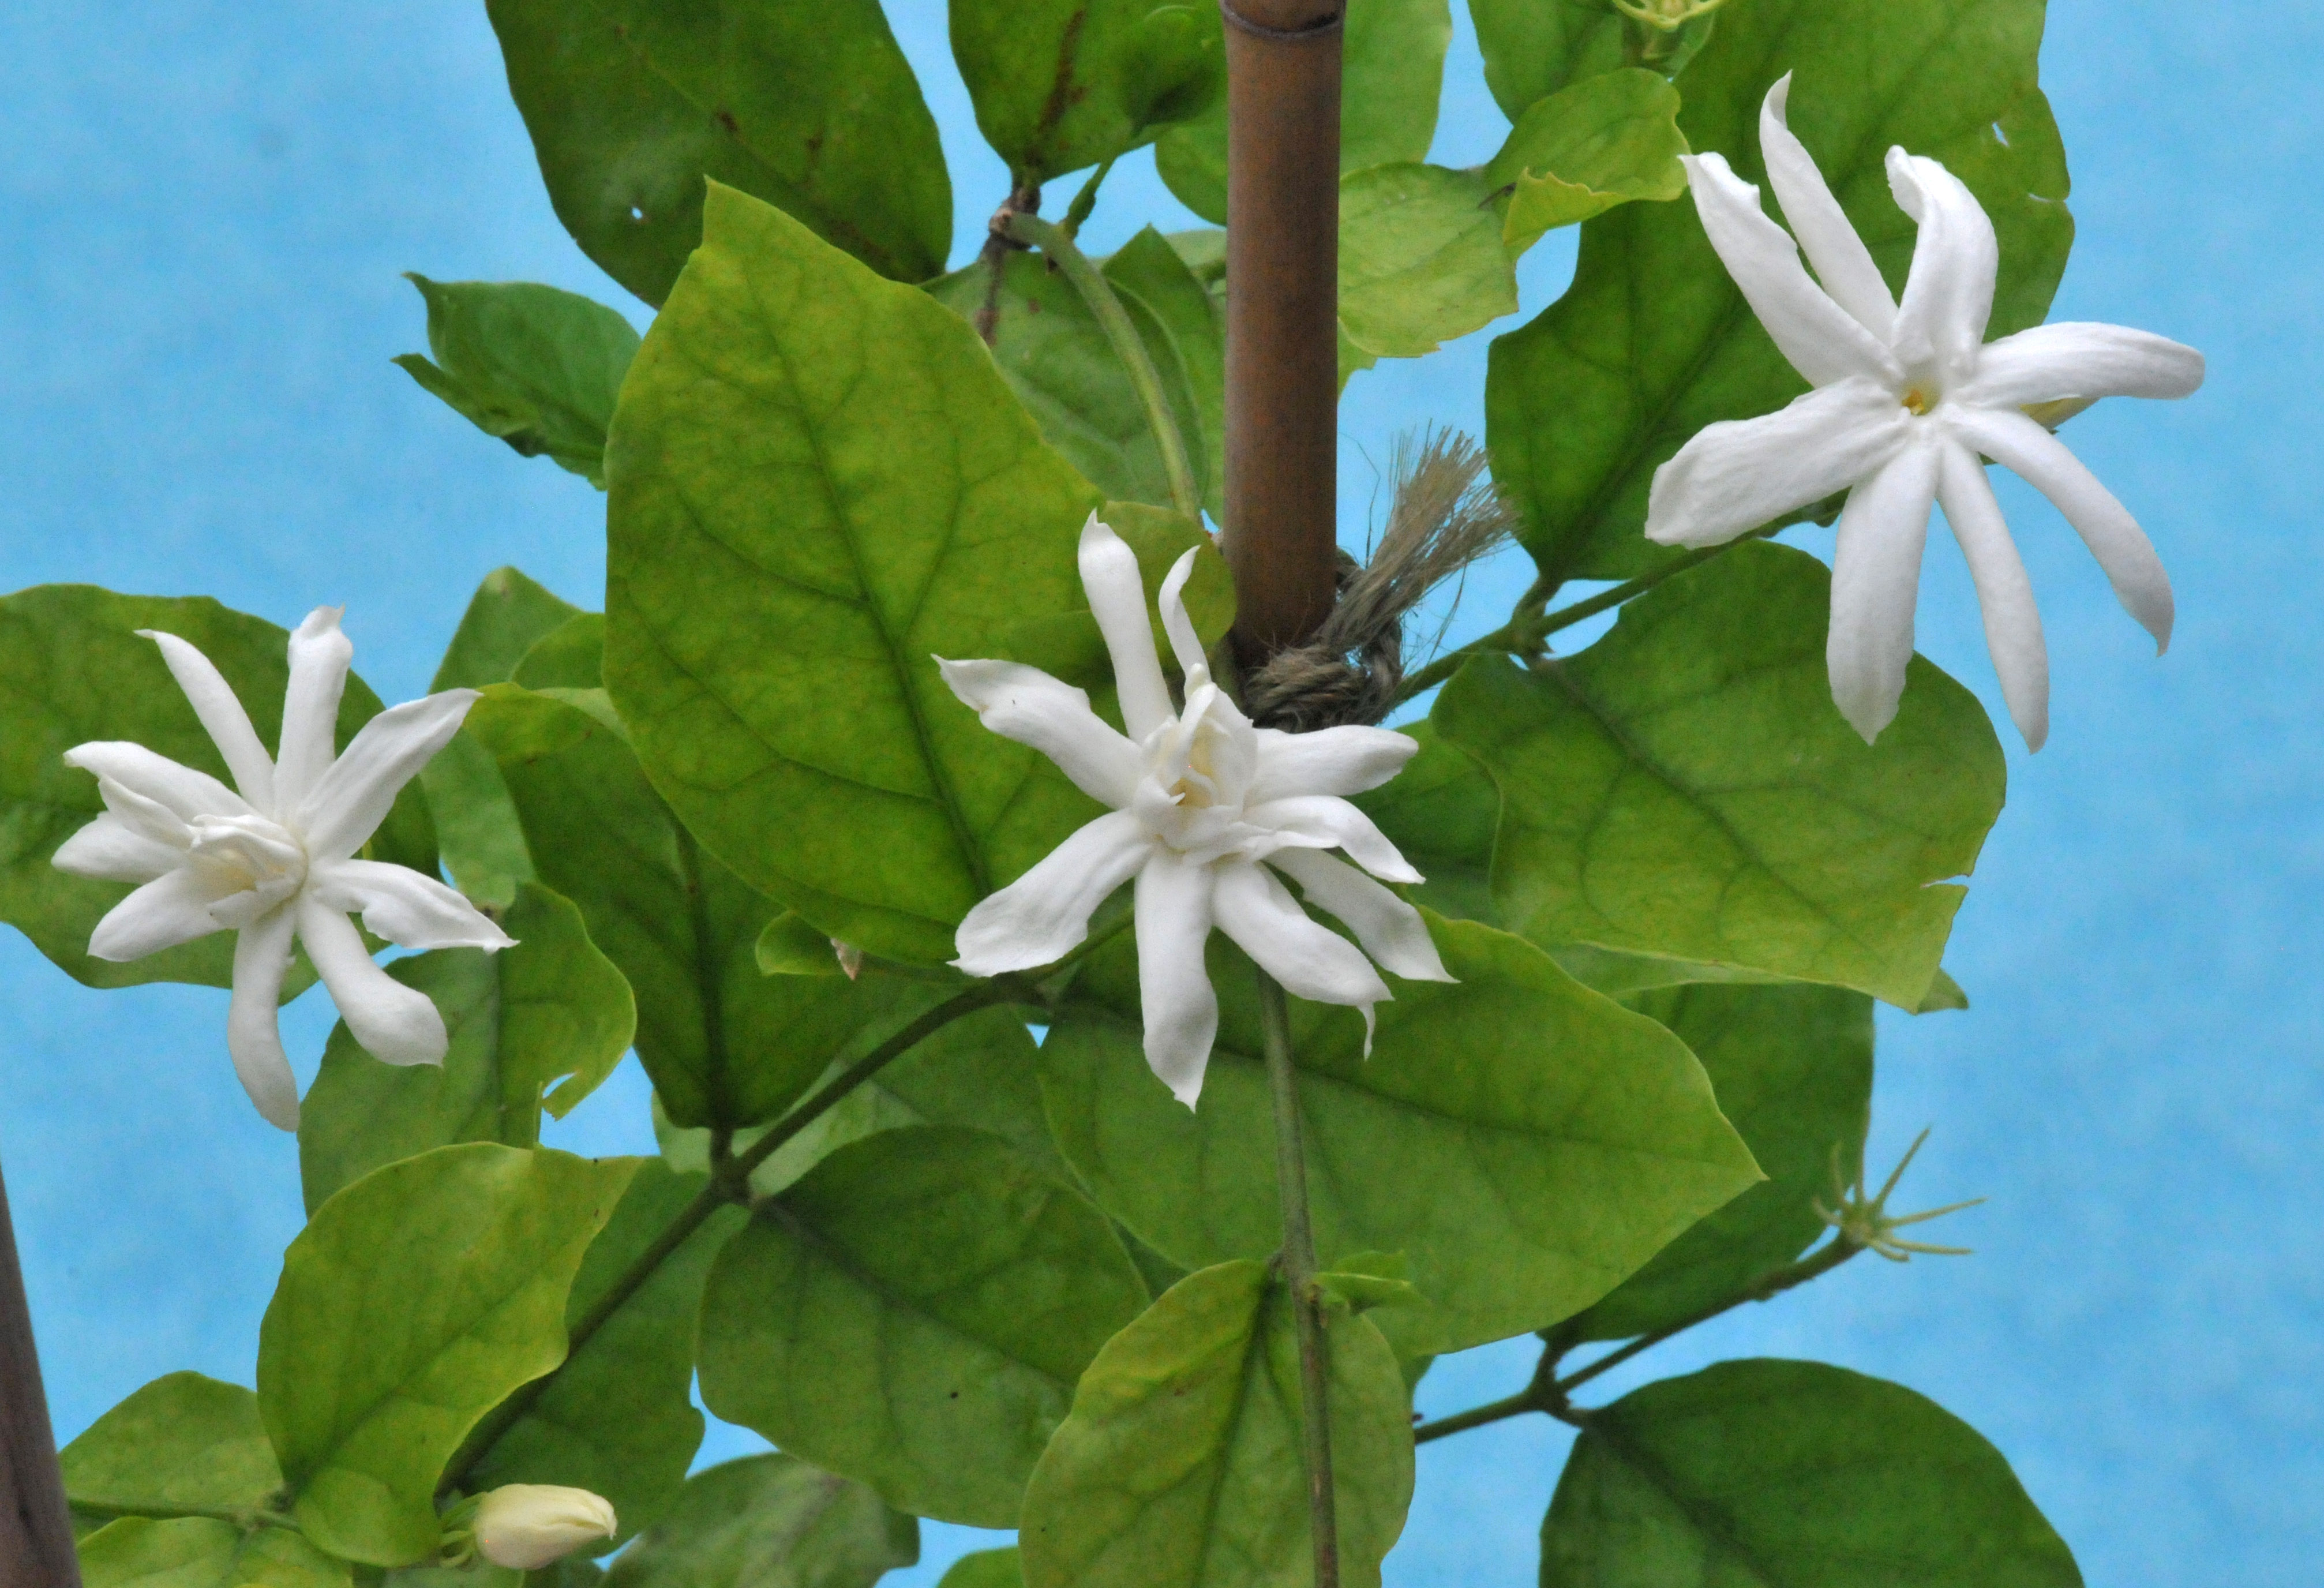 More jasmine petals and wings belle of india produces larger flowers izmirmasajfo